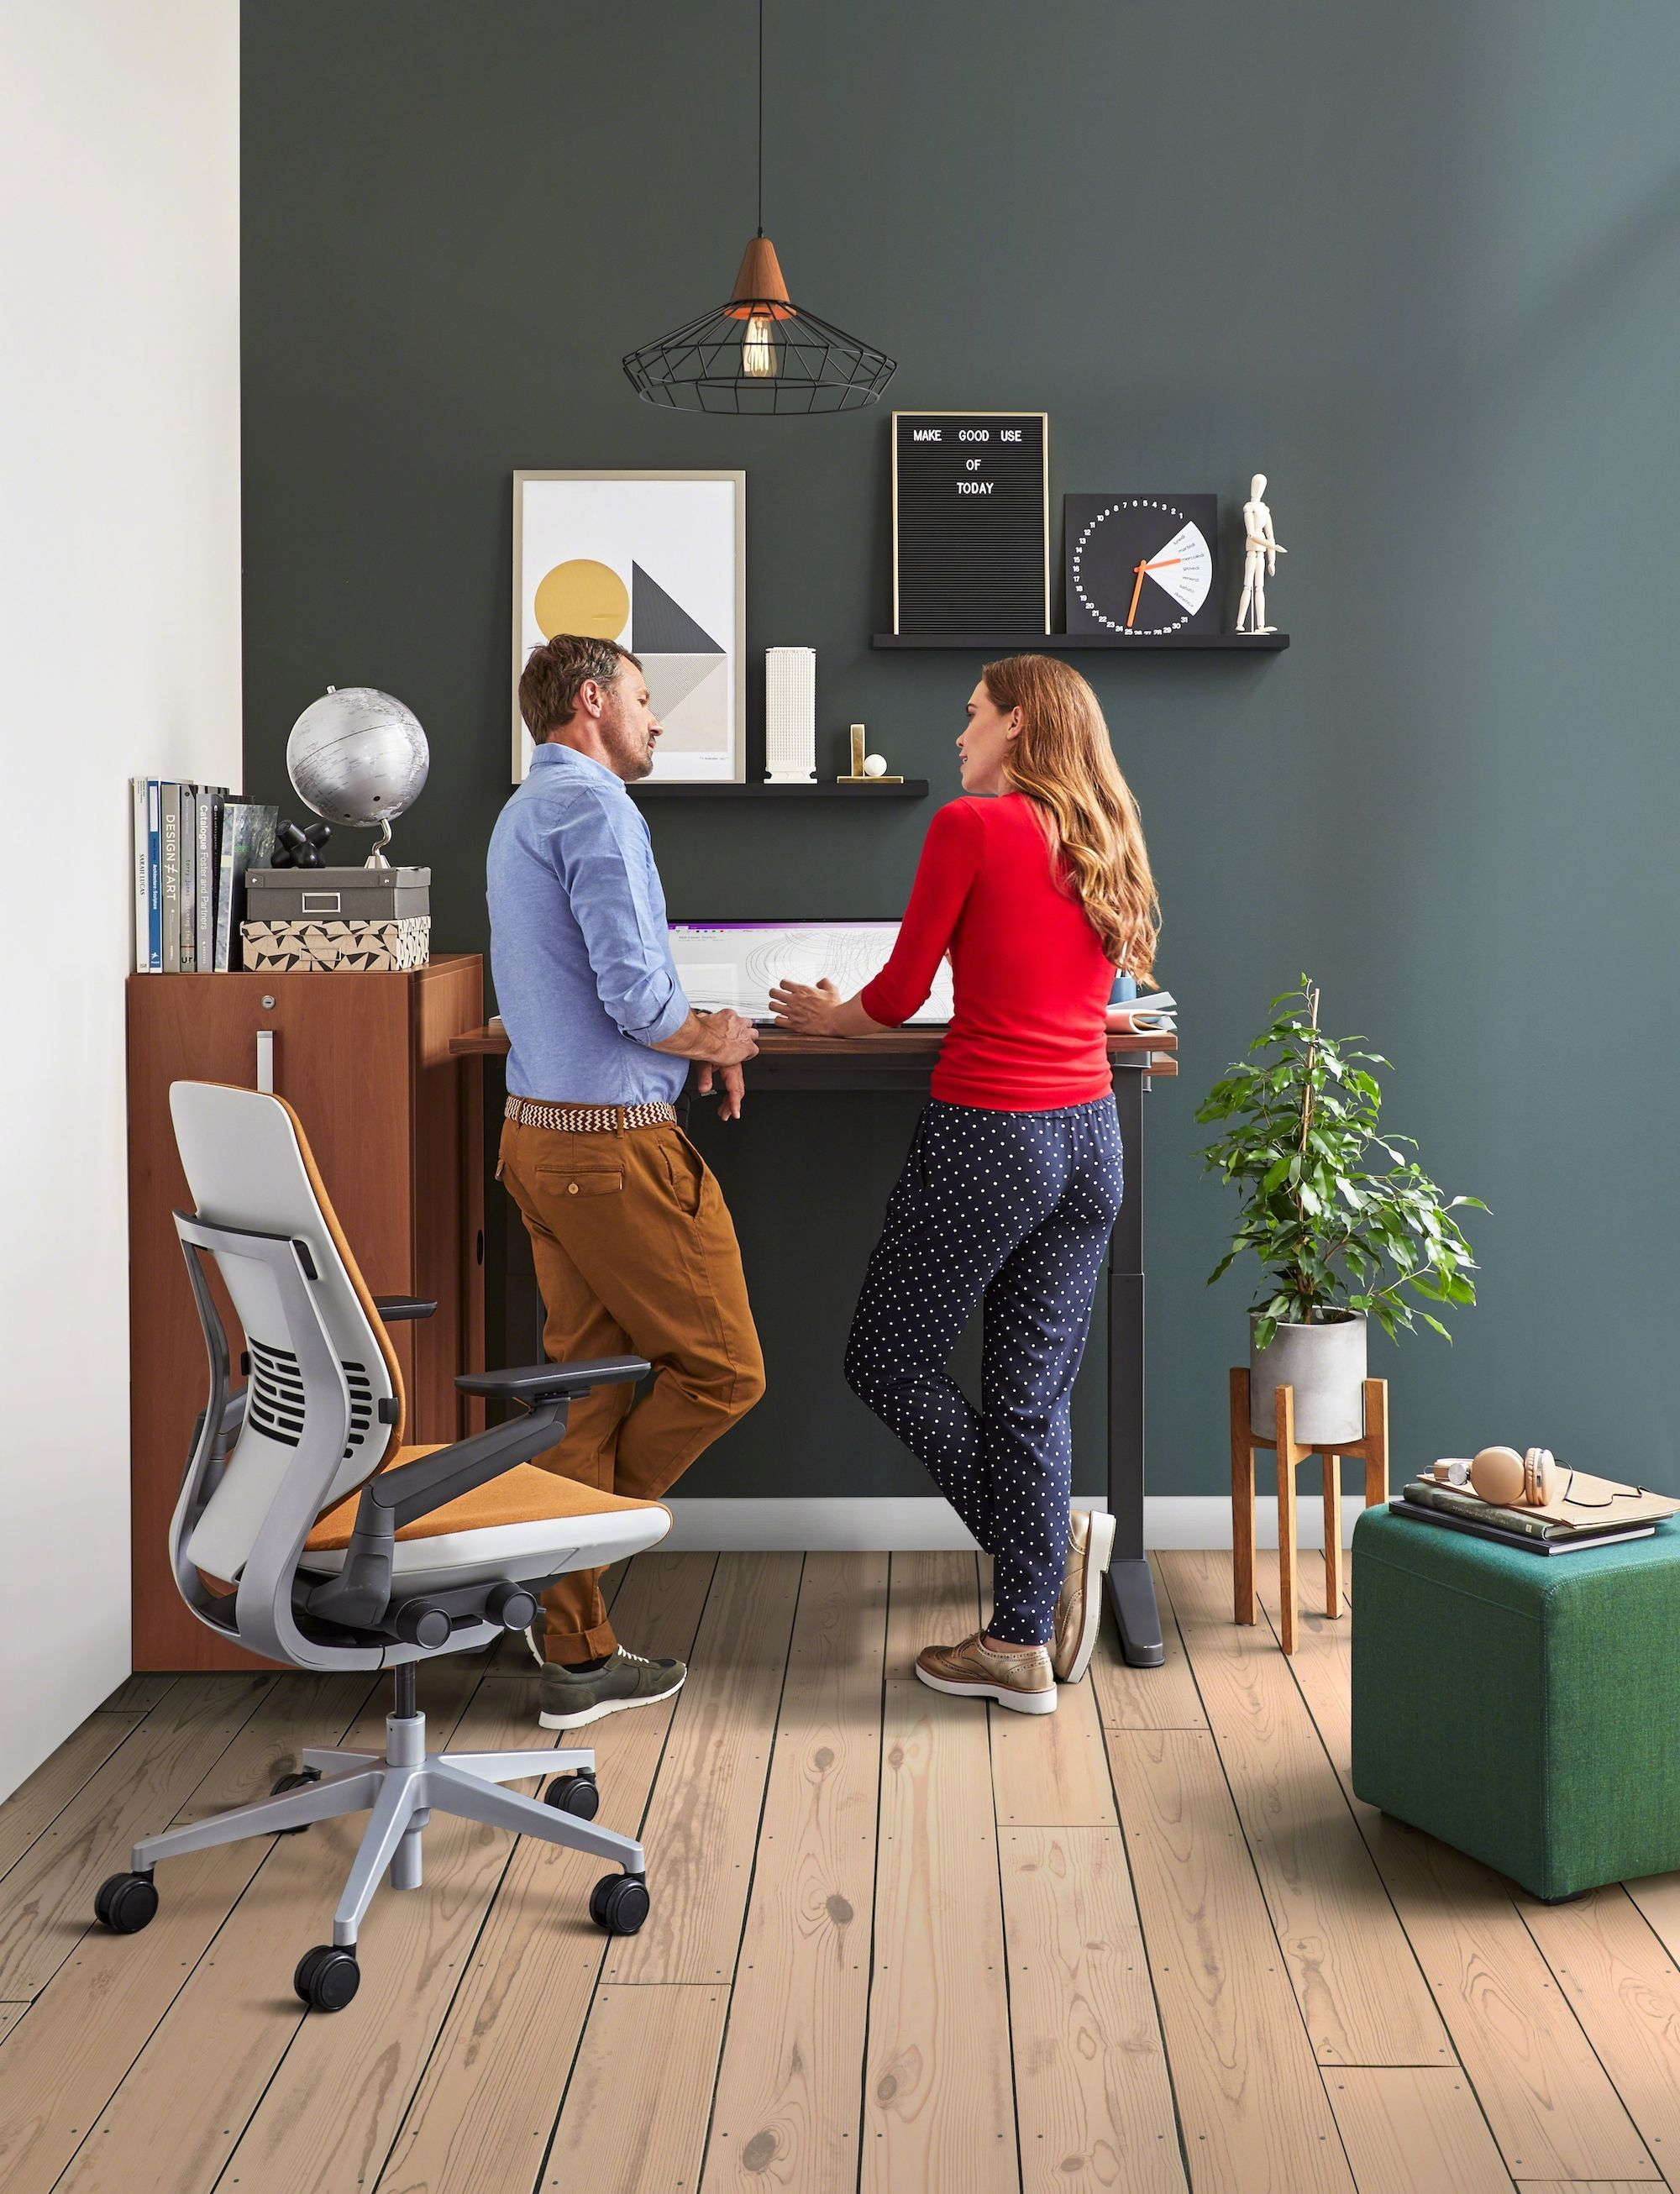 Creative Workspaces Designed to Inspire by Steelcase